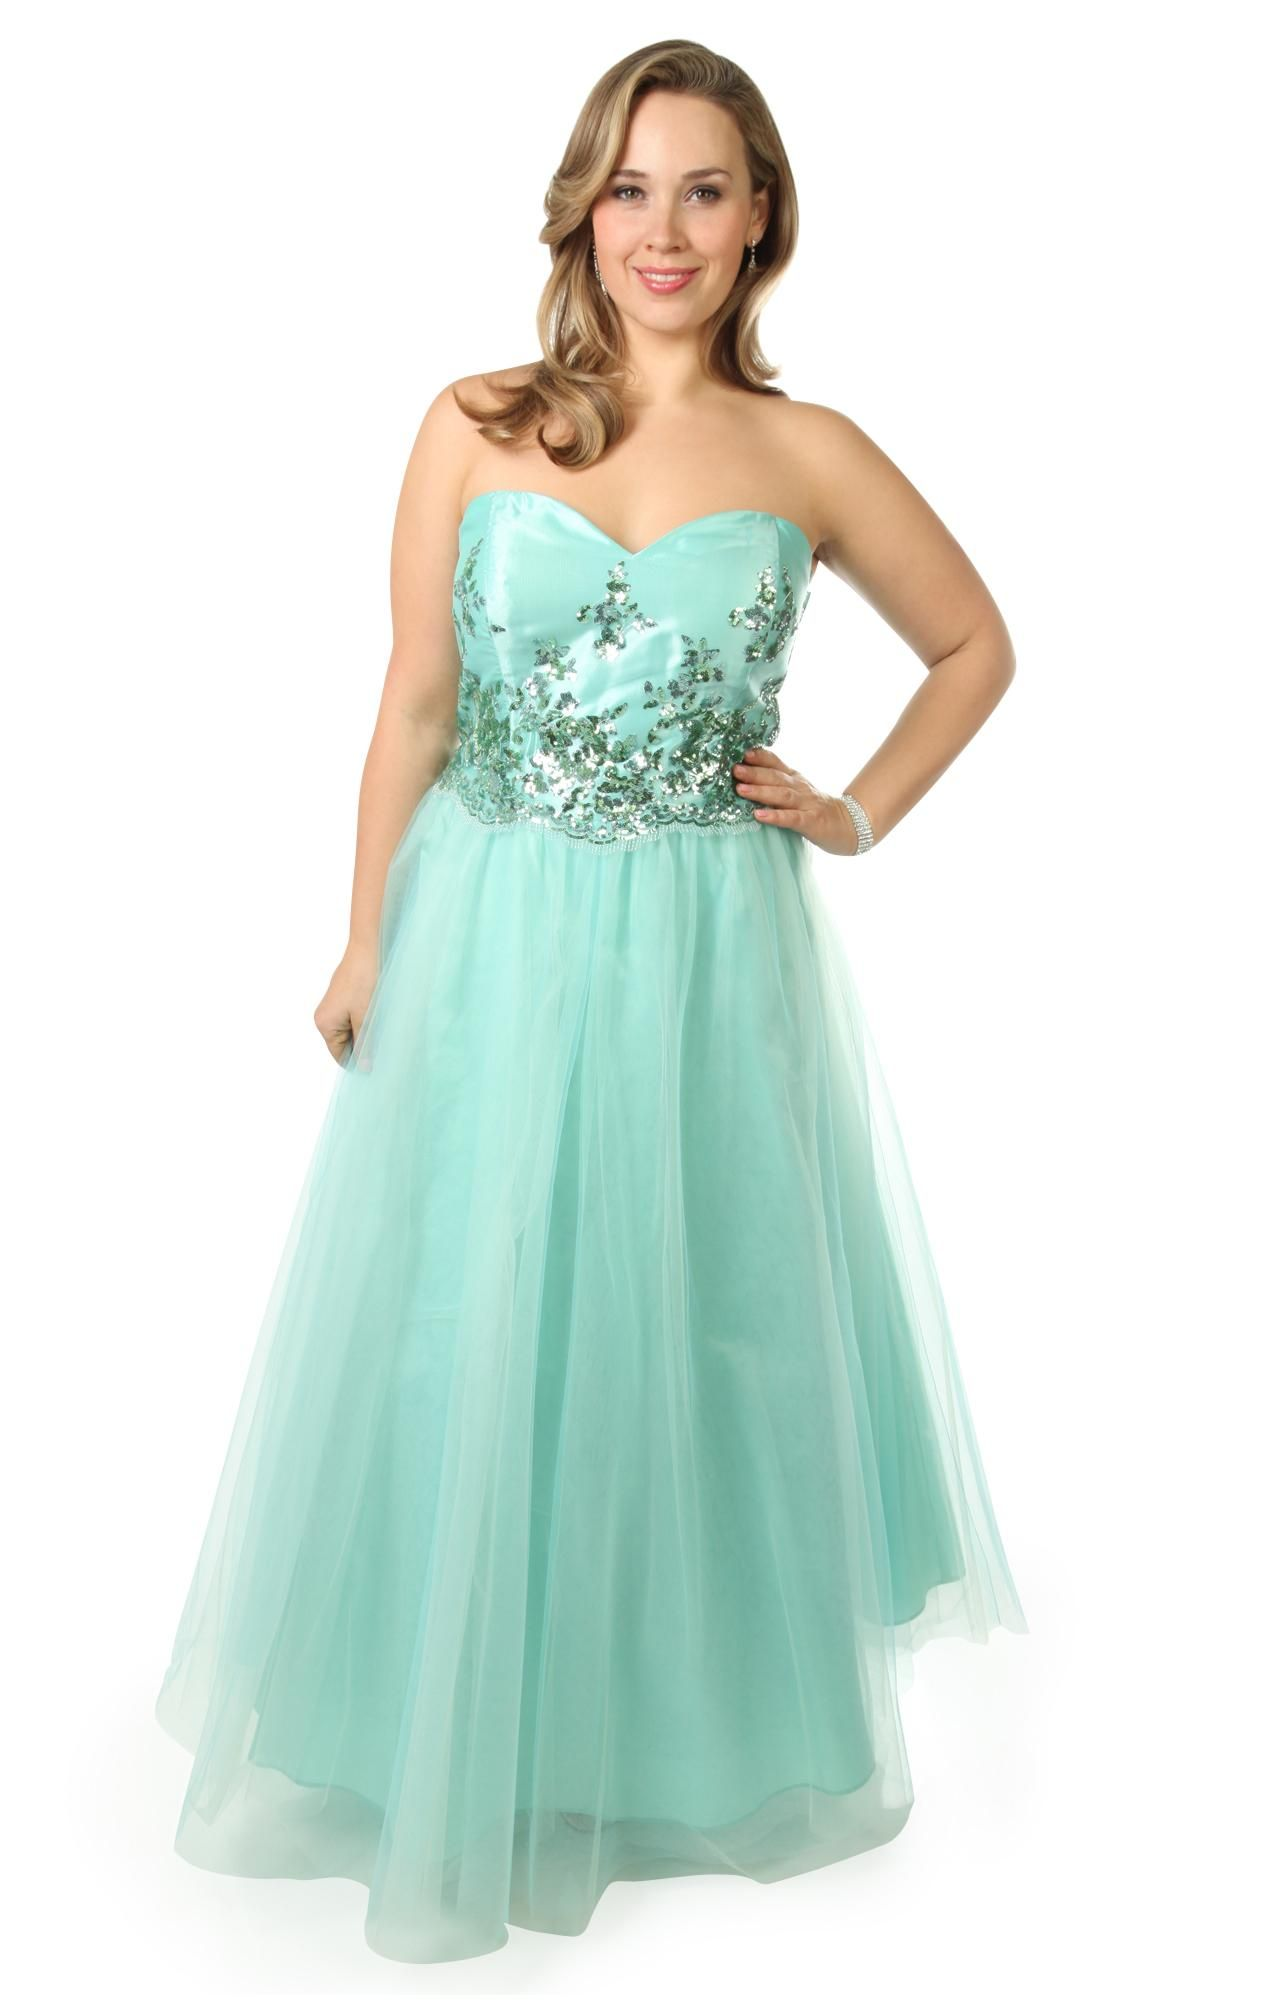 Plus size two tone sequin sea foam tulle skirt long prom dress ...